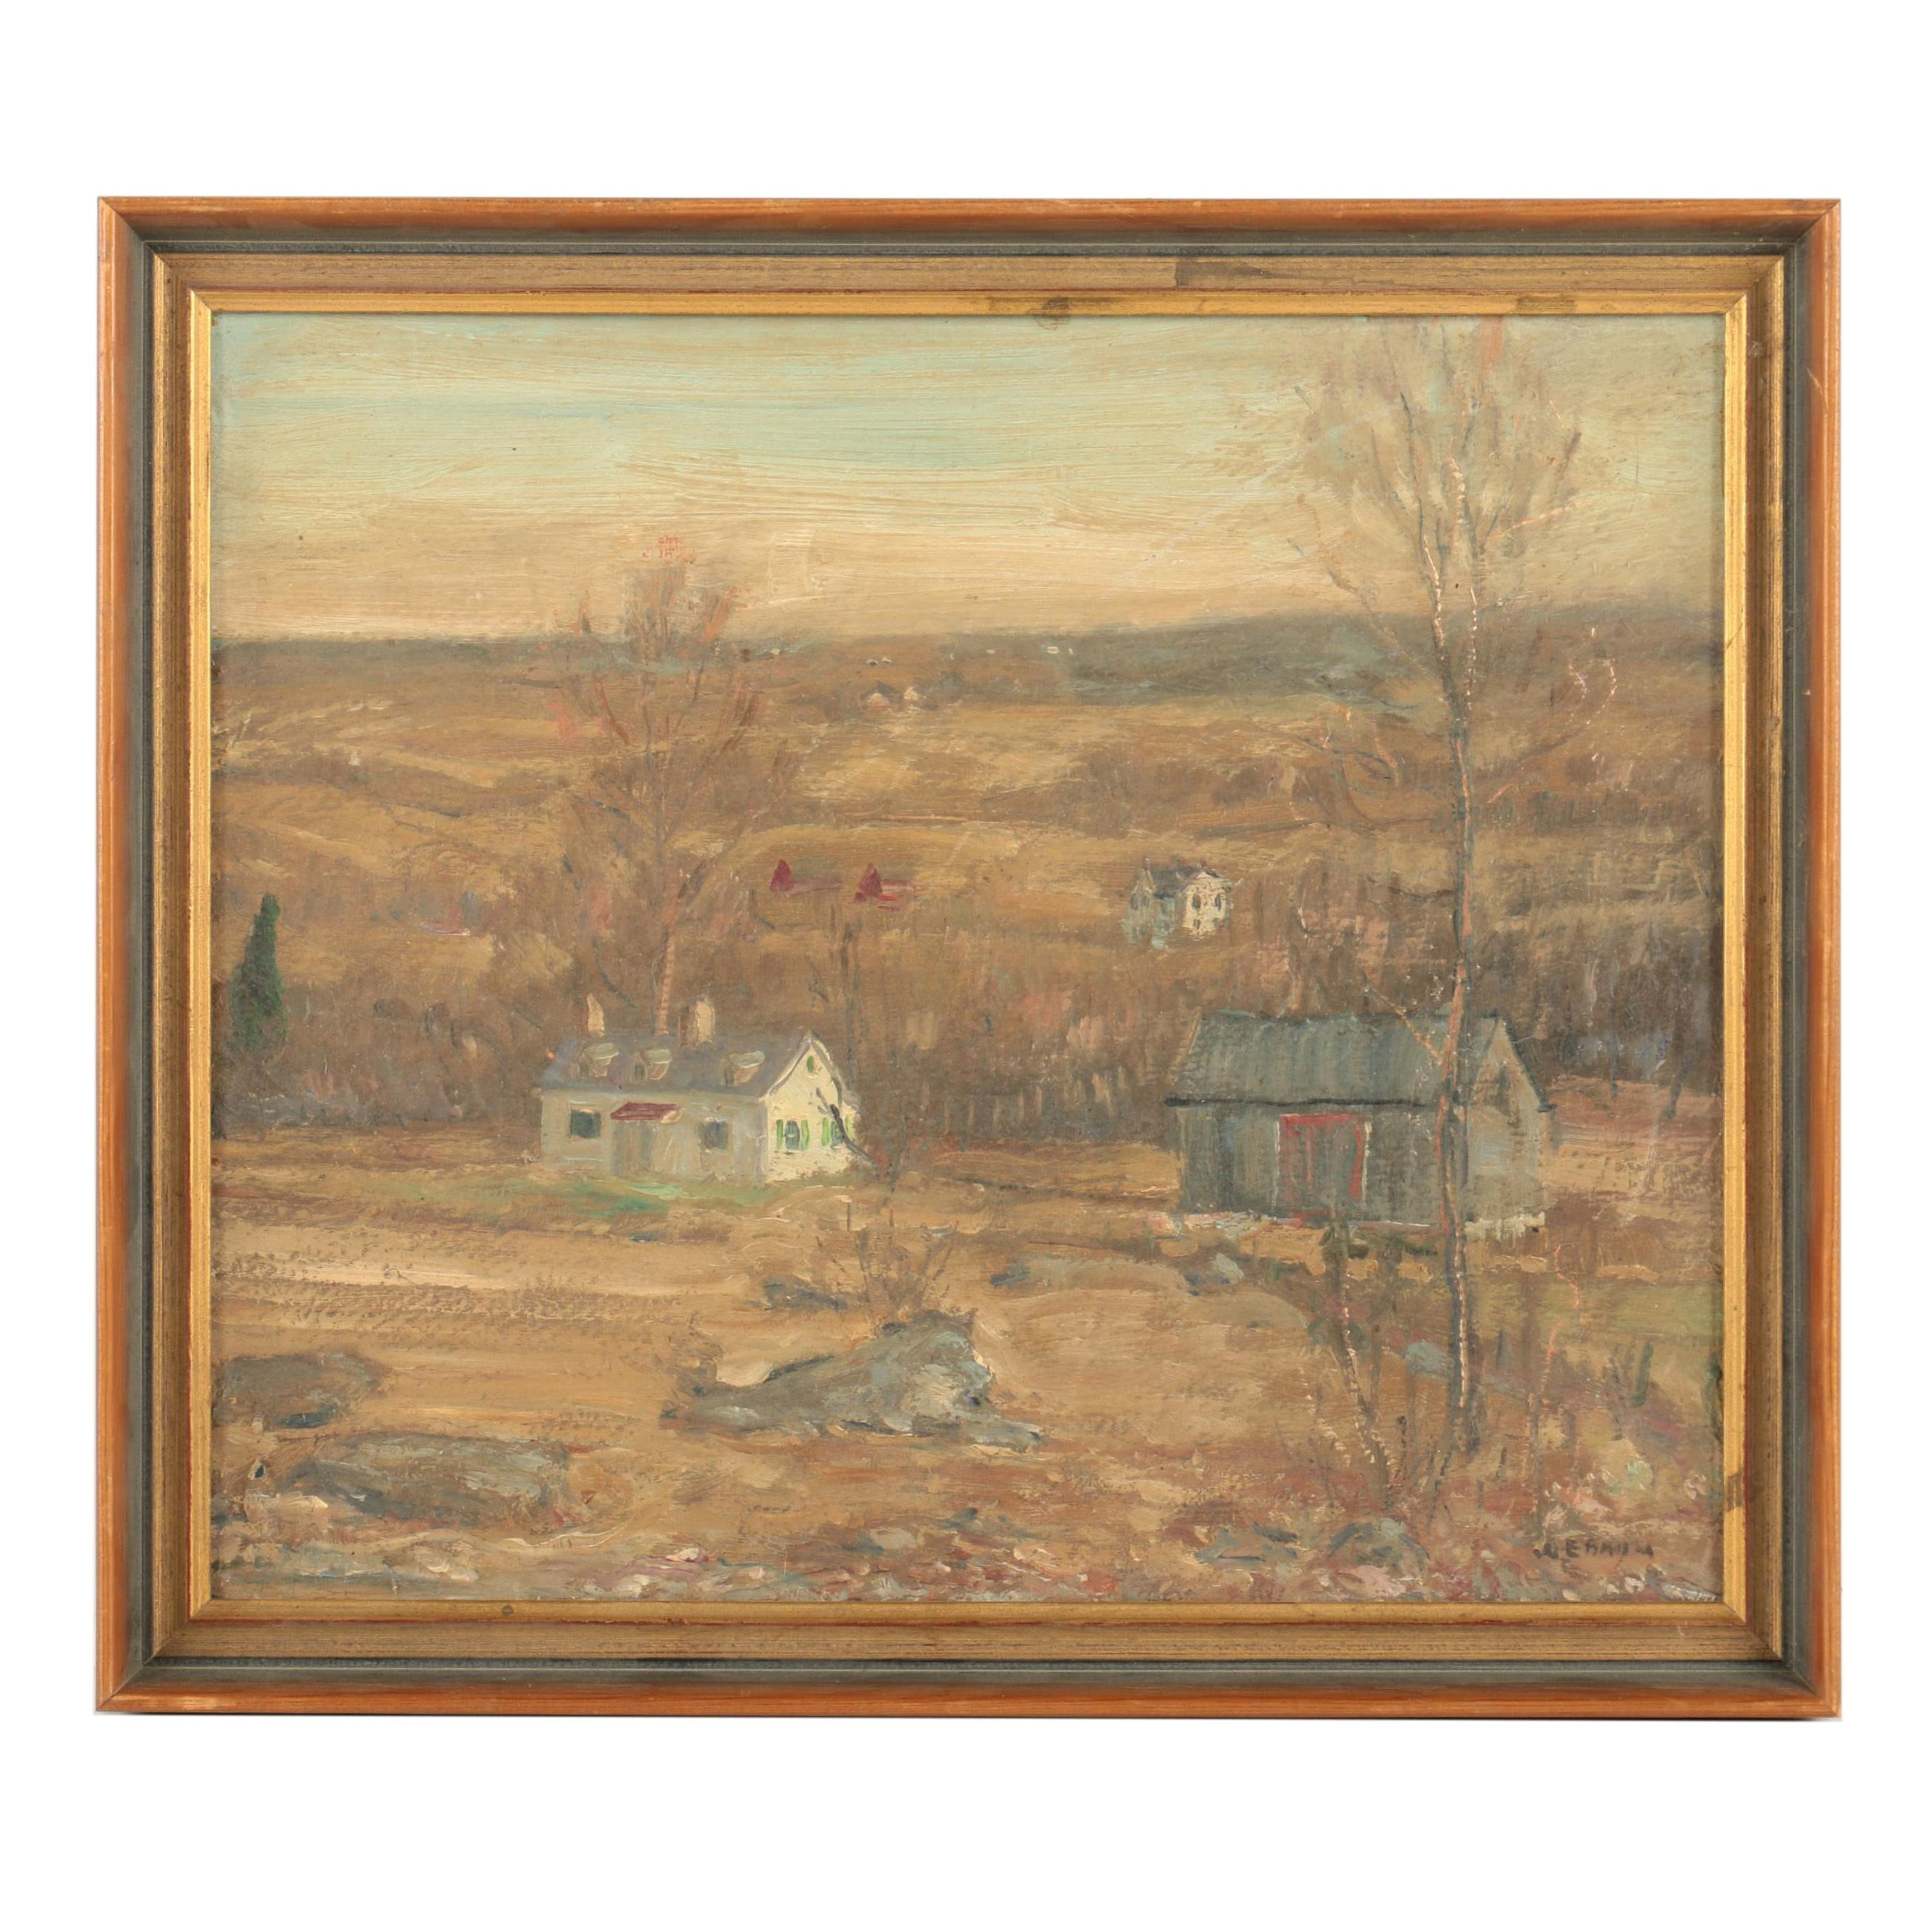 Oil Painting on Board of Farmscape